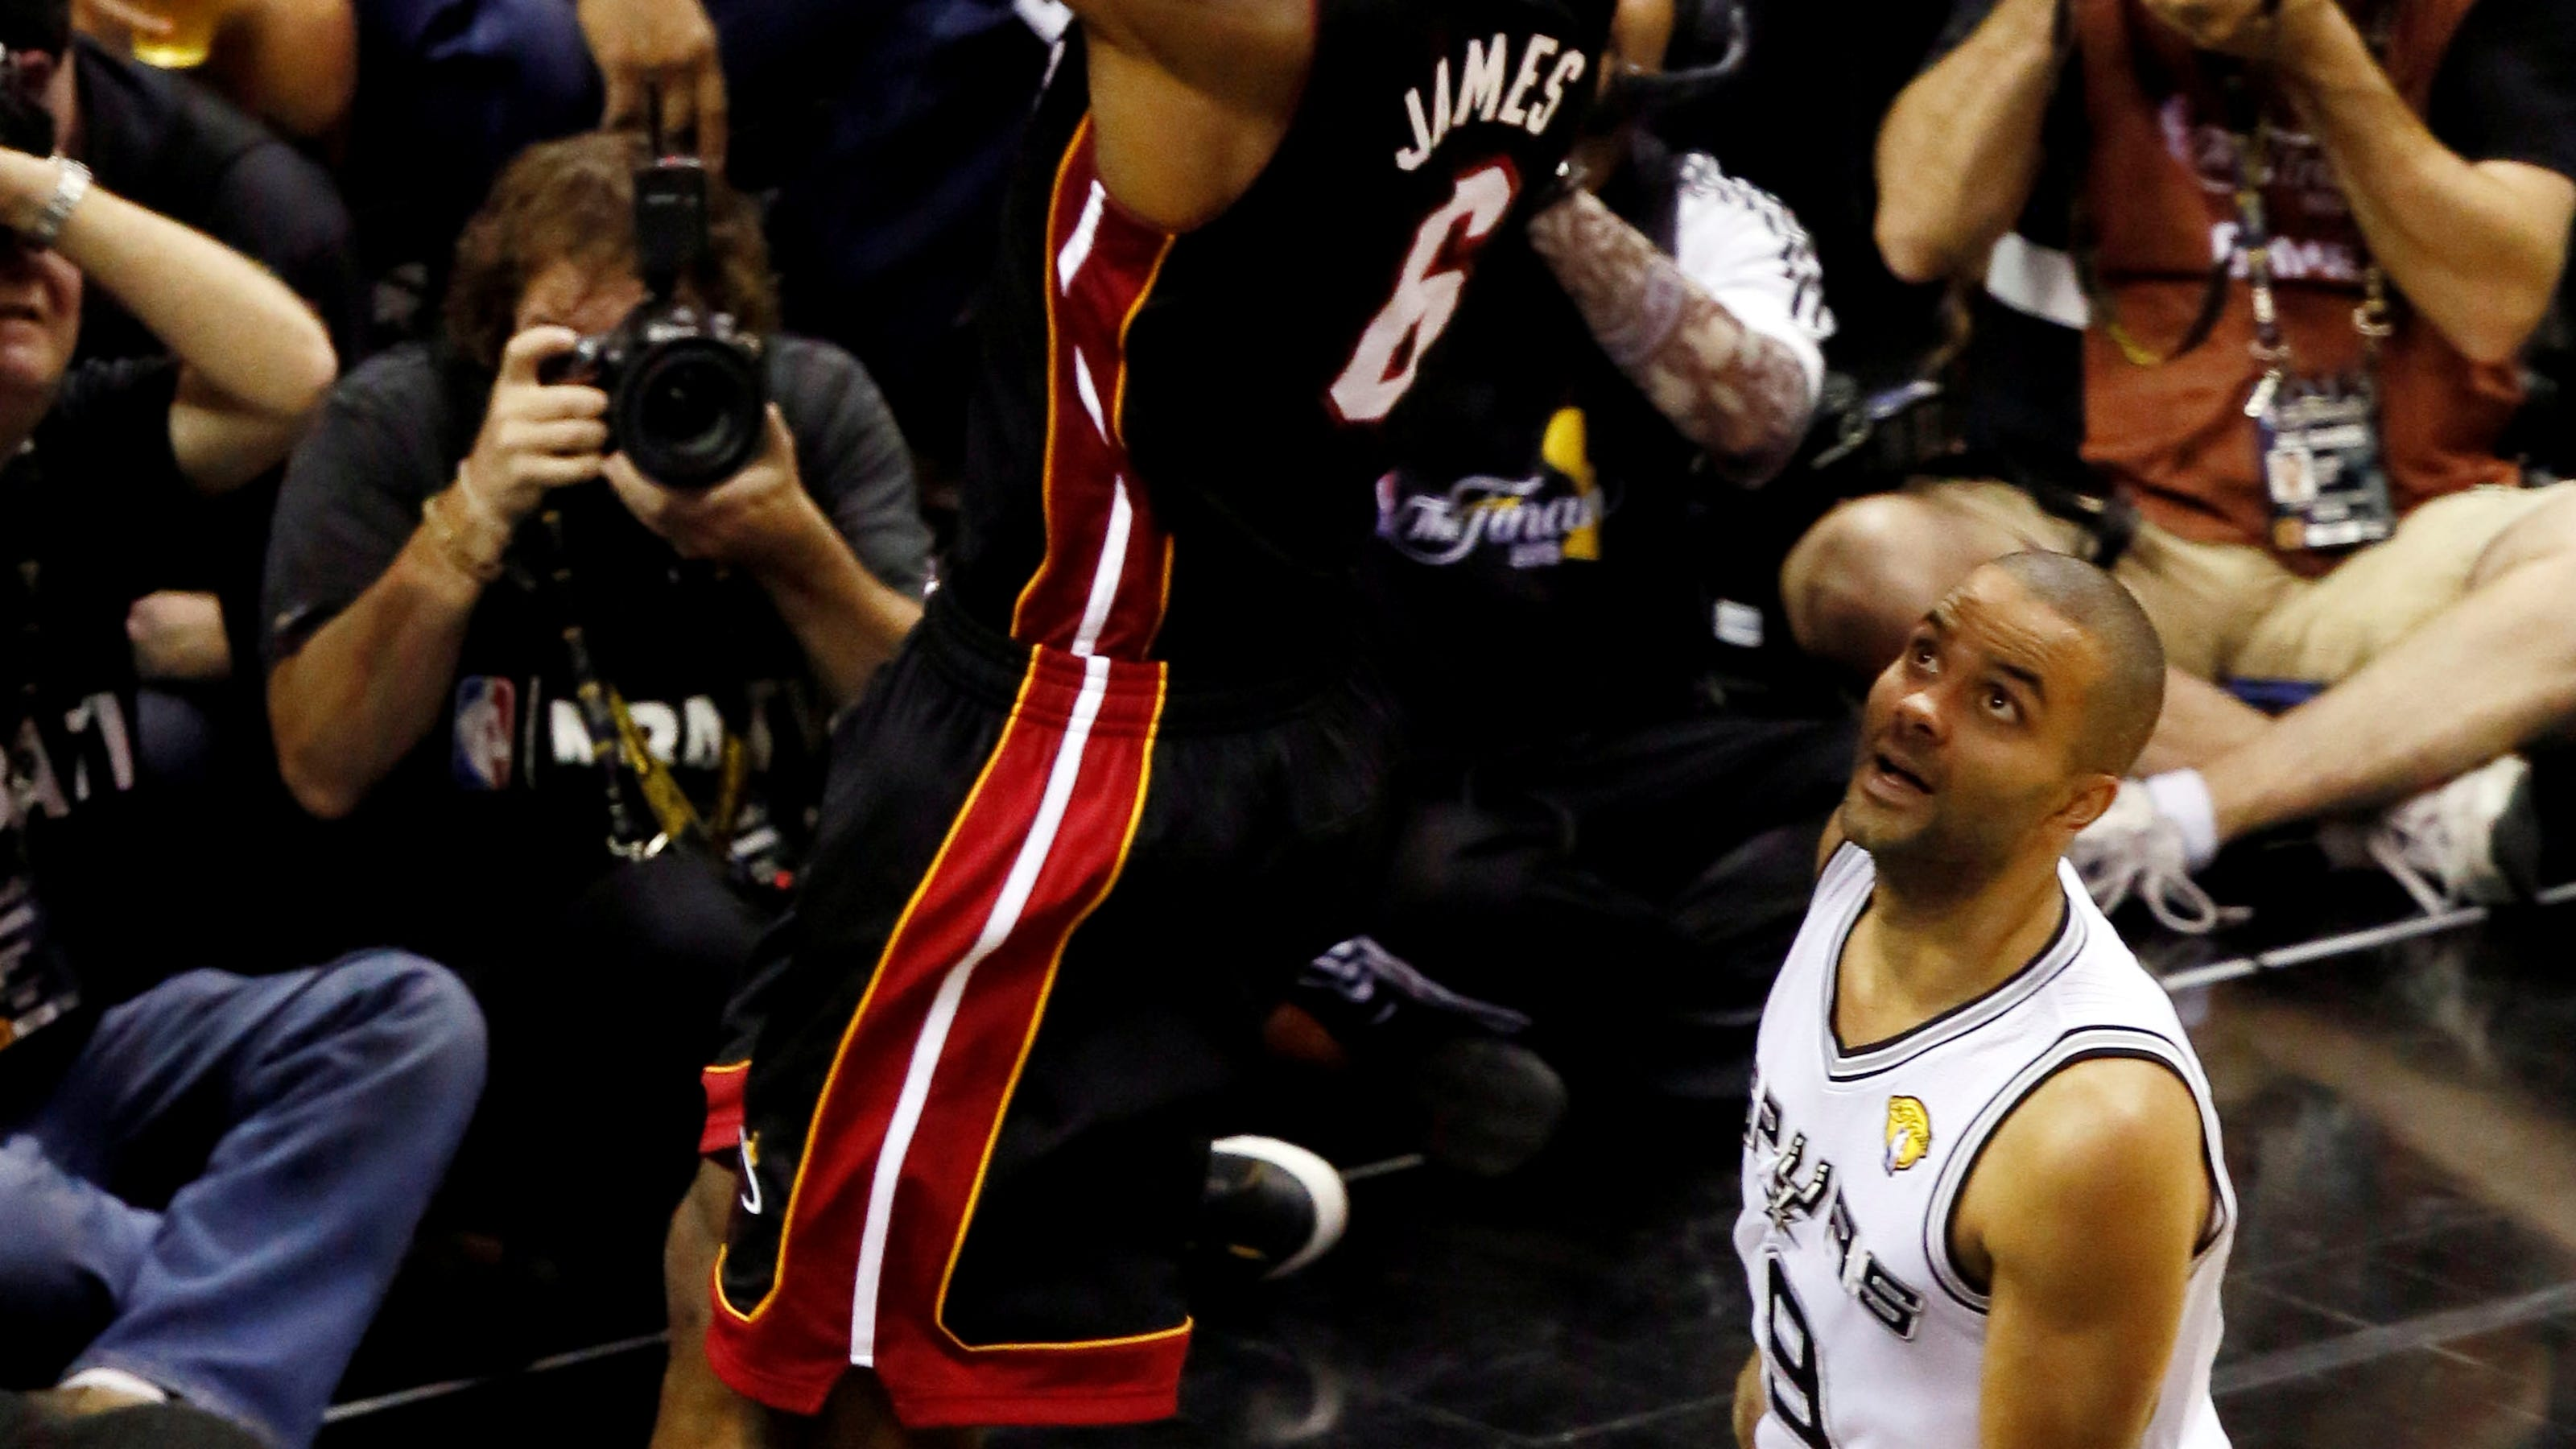 NBA Finals' 2-3-2 format not an issue with players